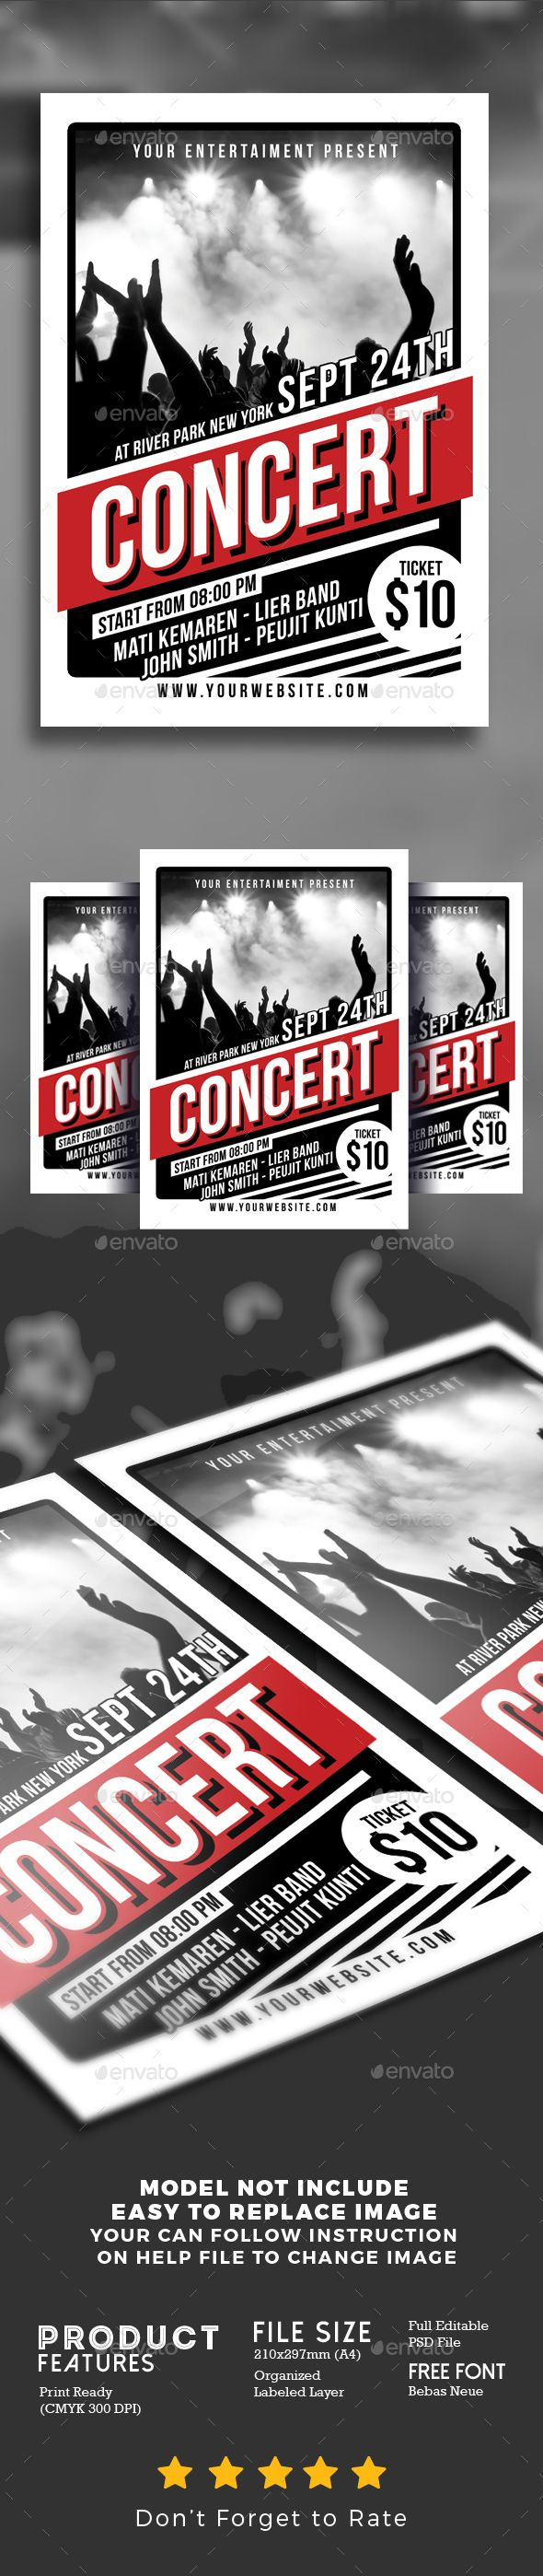 FLYER DESIGN IDEAS > Music Concert Flyer Poster Template PSD _ Super useful for graphic designers in (desperate) need of music concert flyer & poster templates ;) Get even more flyer ideas for your projects from my 'flyer board' by clicking the Boards name above - enjoy! ;)